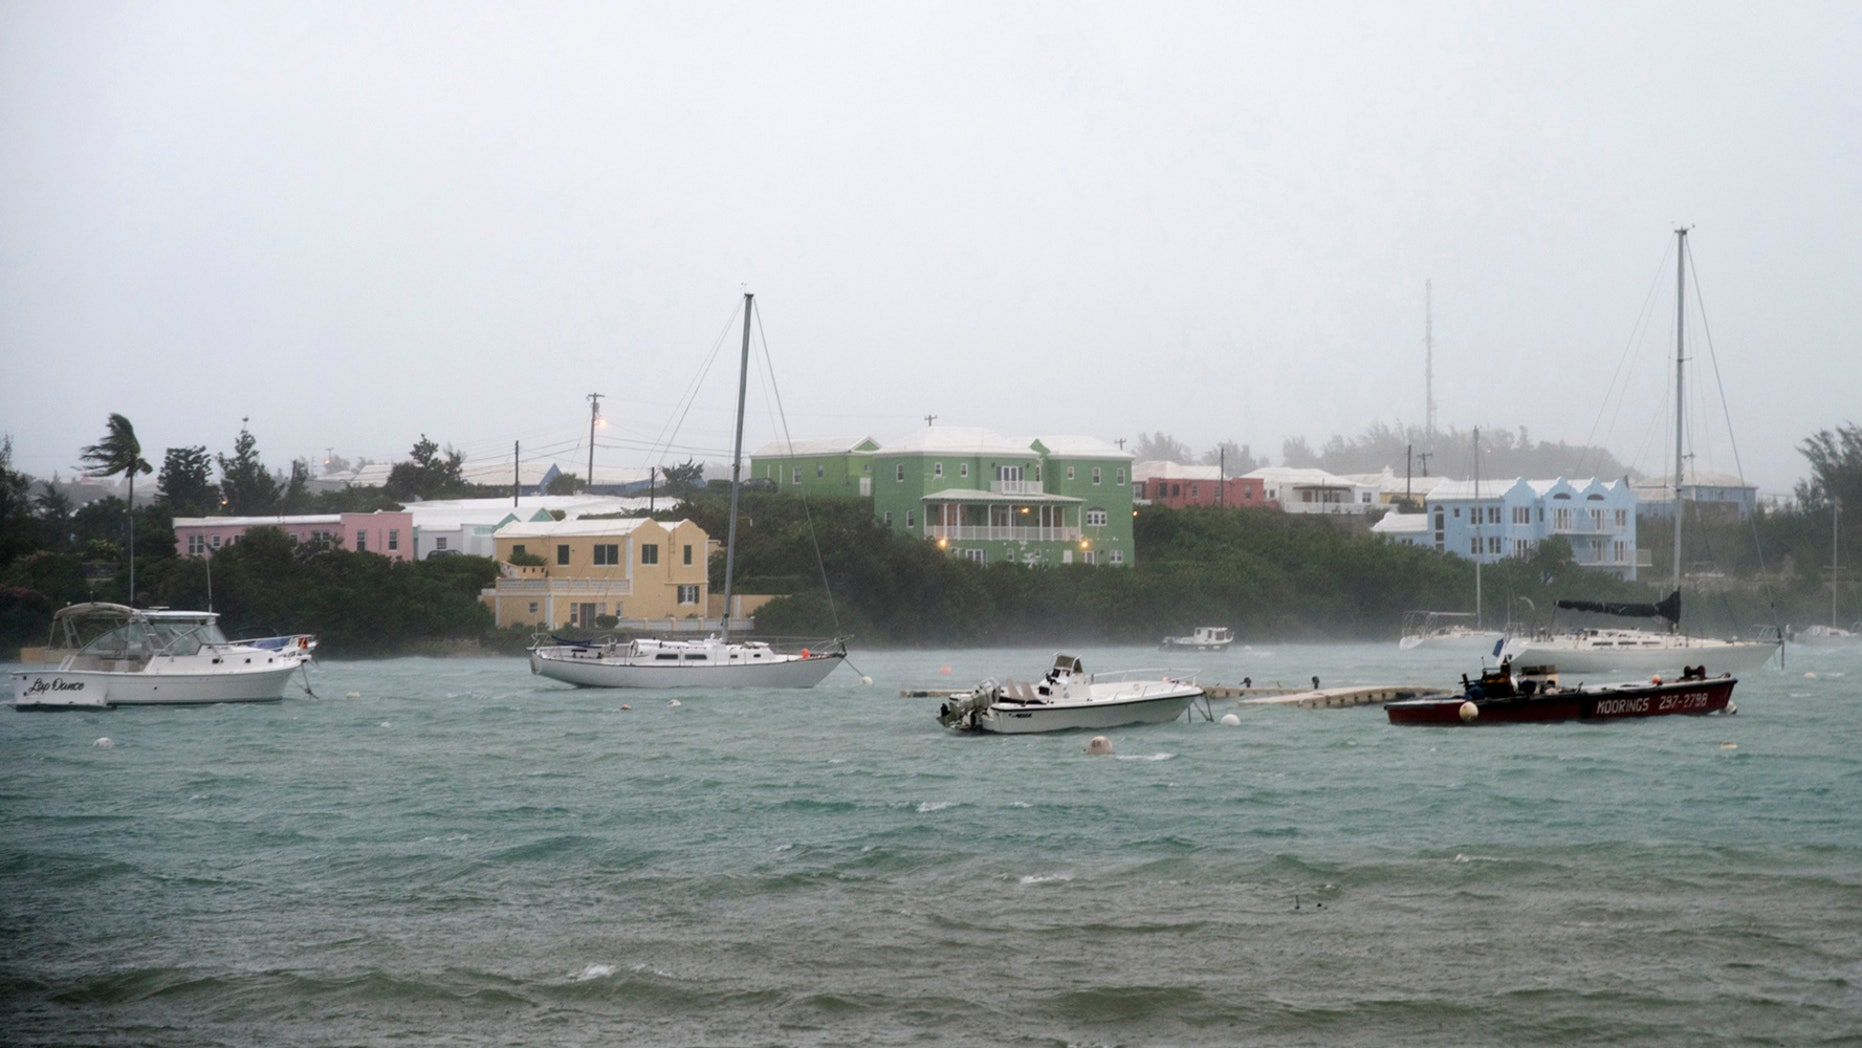 Heavy rain and strong winds rock boats moored in Mullet Bay in St. Georges, Bermuda, on Thursday.